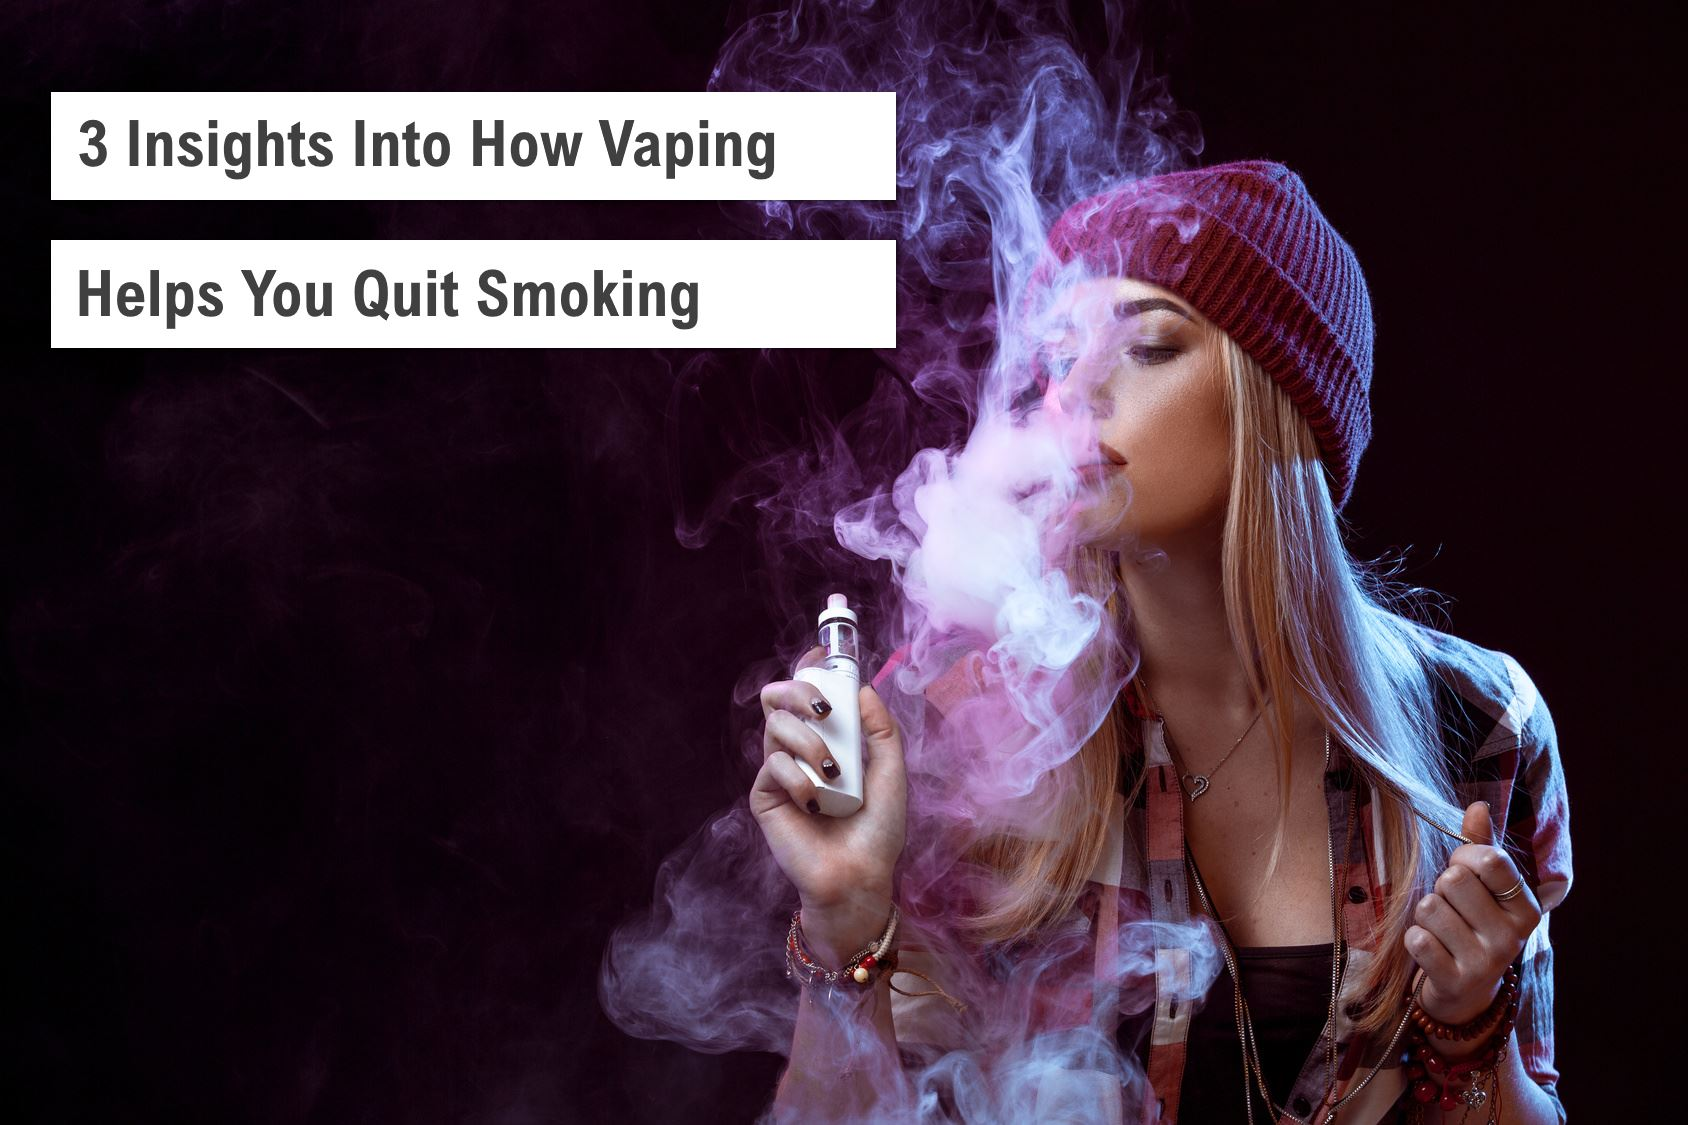 3 Insights into How Vaping Helps You Quit Smoking